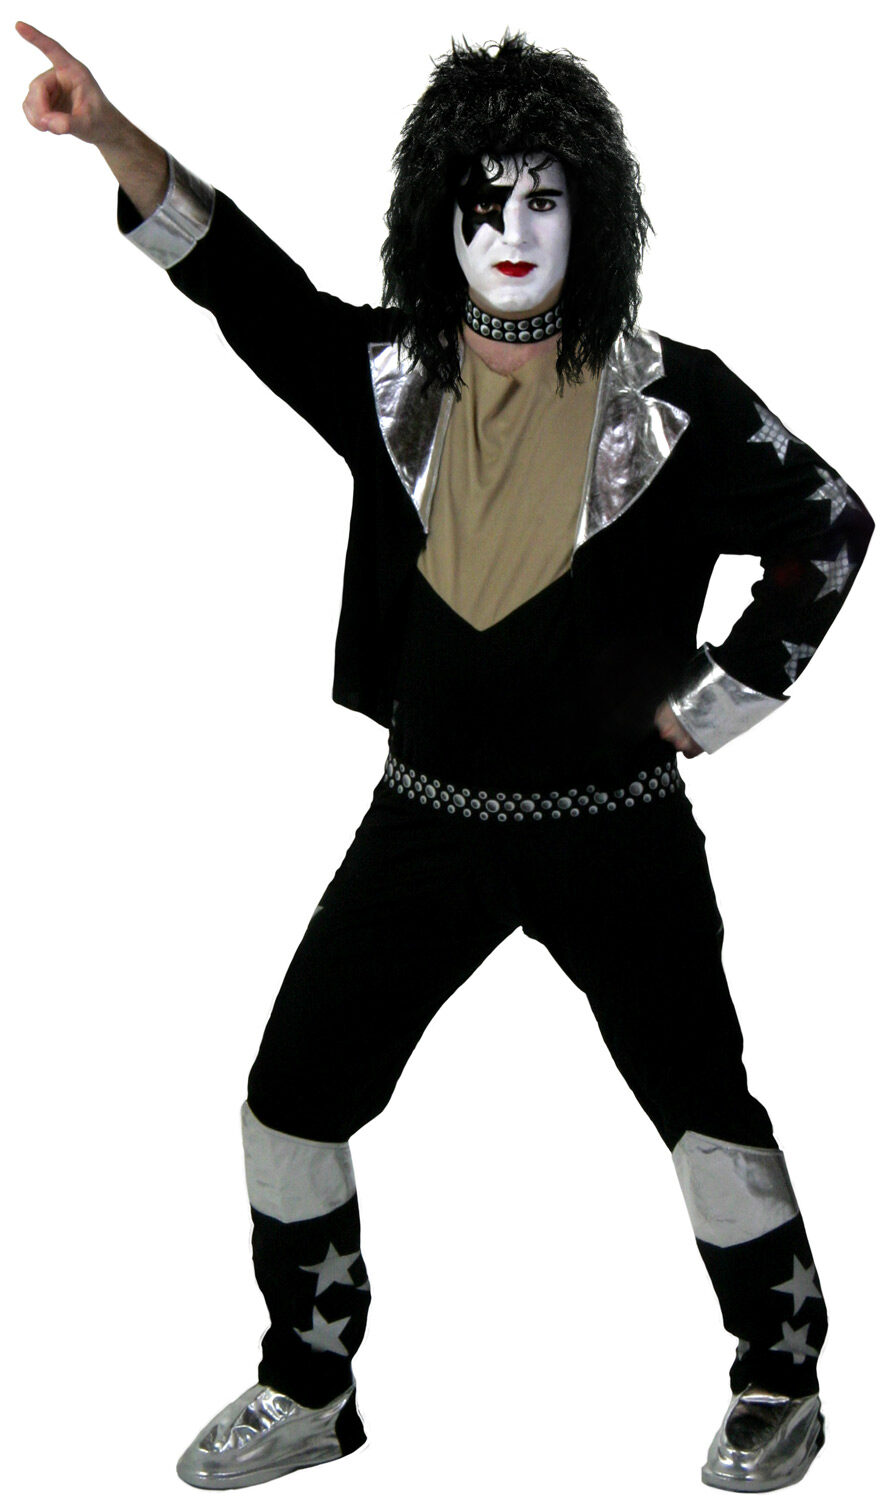 Halloween Rockstar.Starchild Kiss Rockstar Adult Costume Mr Costumes